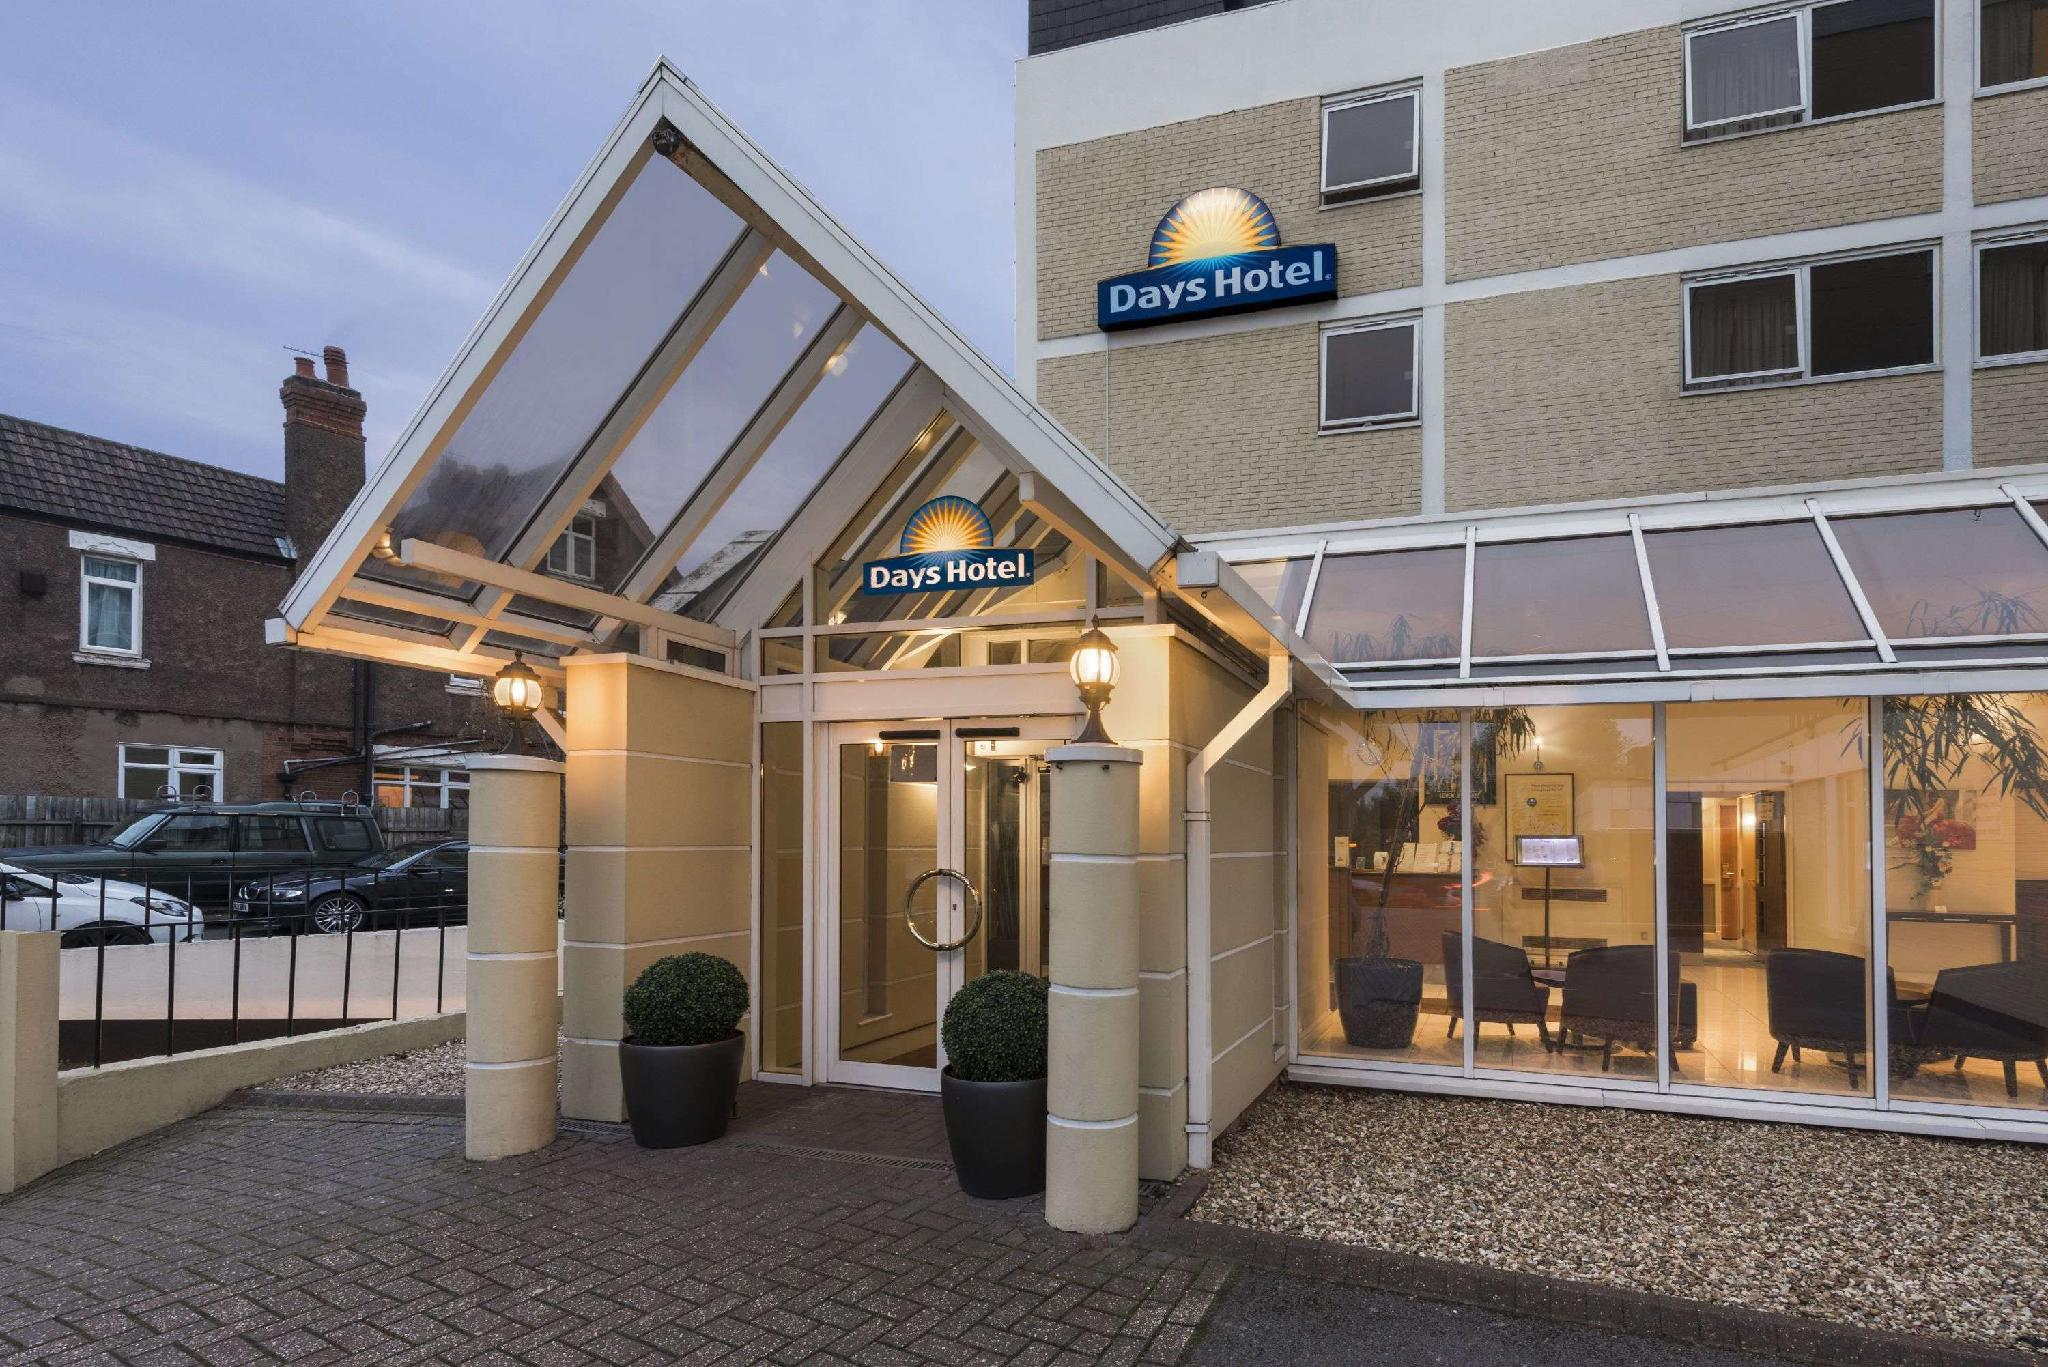 Days Hotel by Wyndham Coventry City Centre